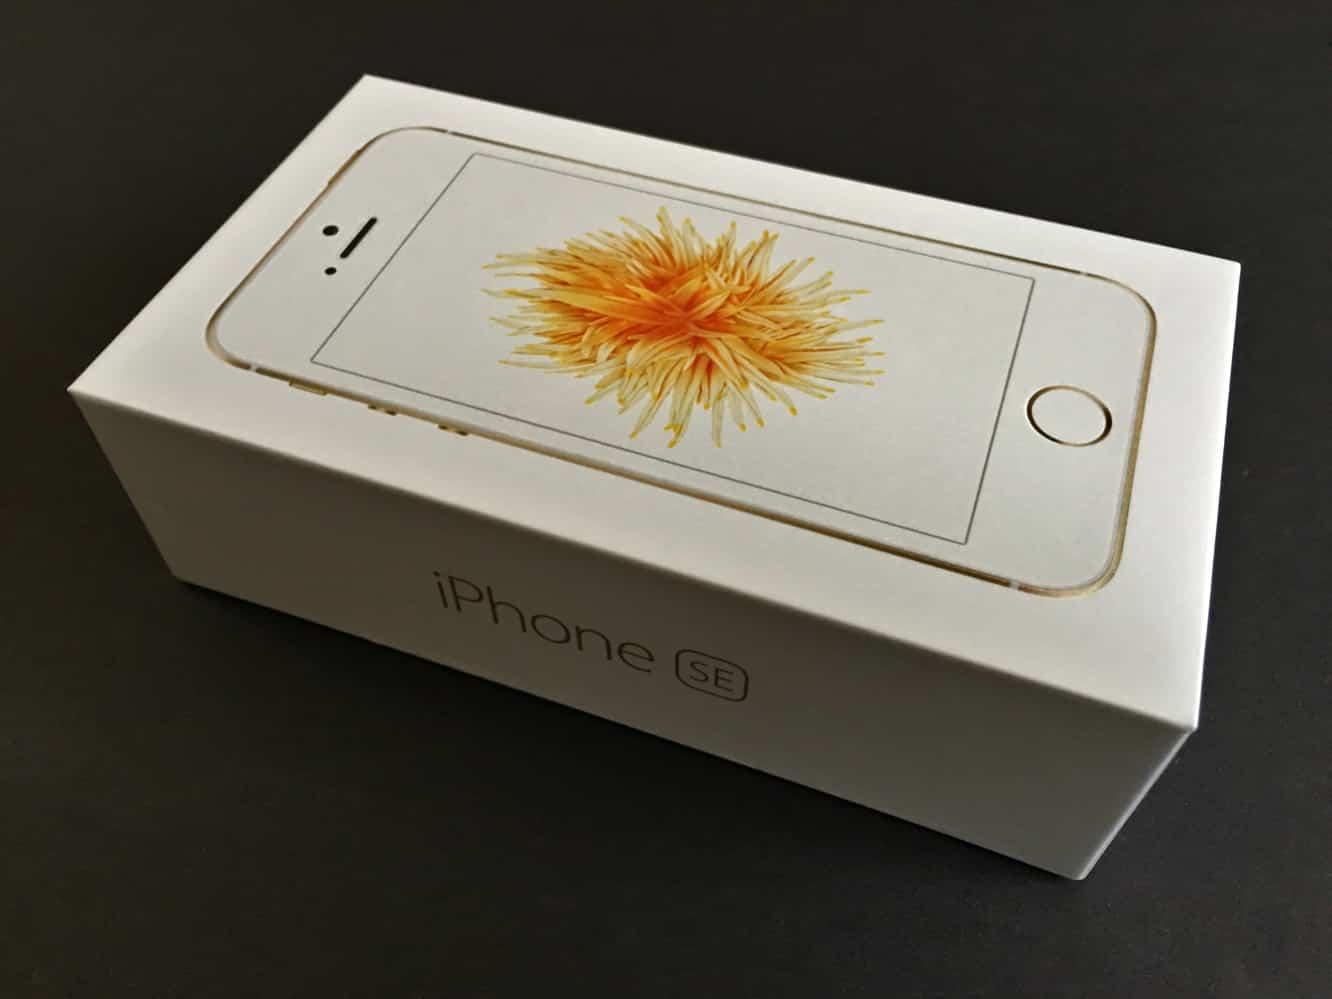 Unboxing the iPhone SE